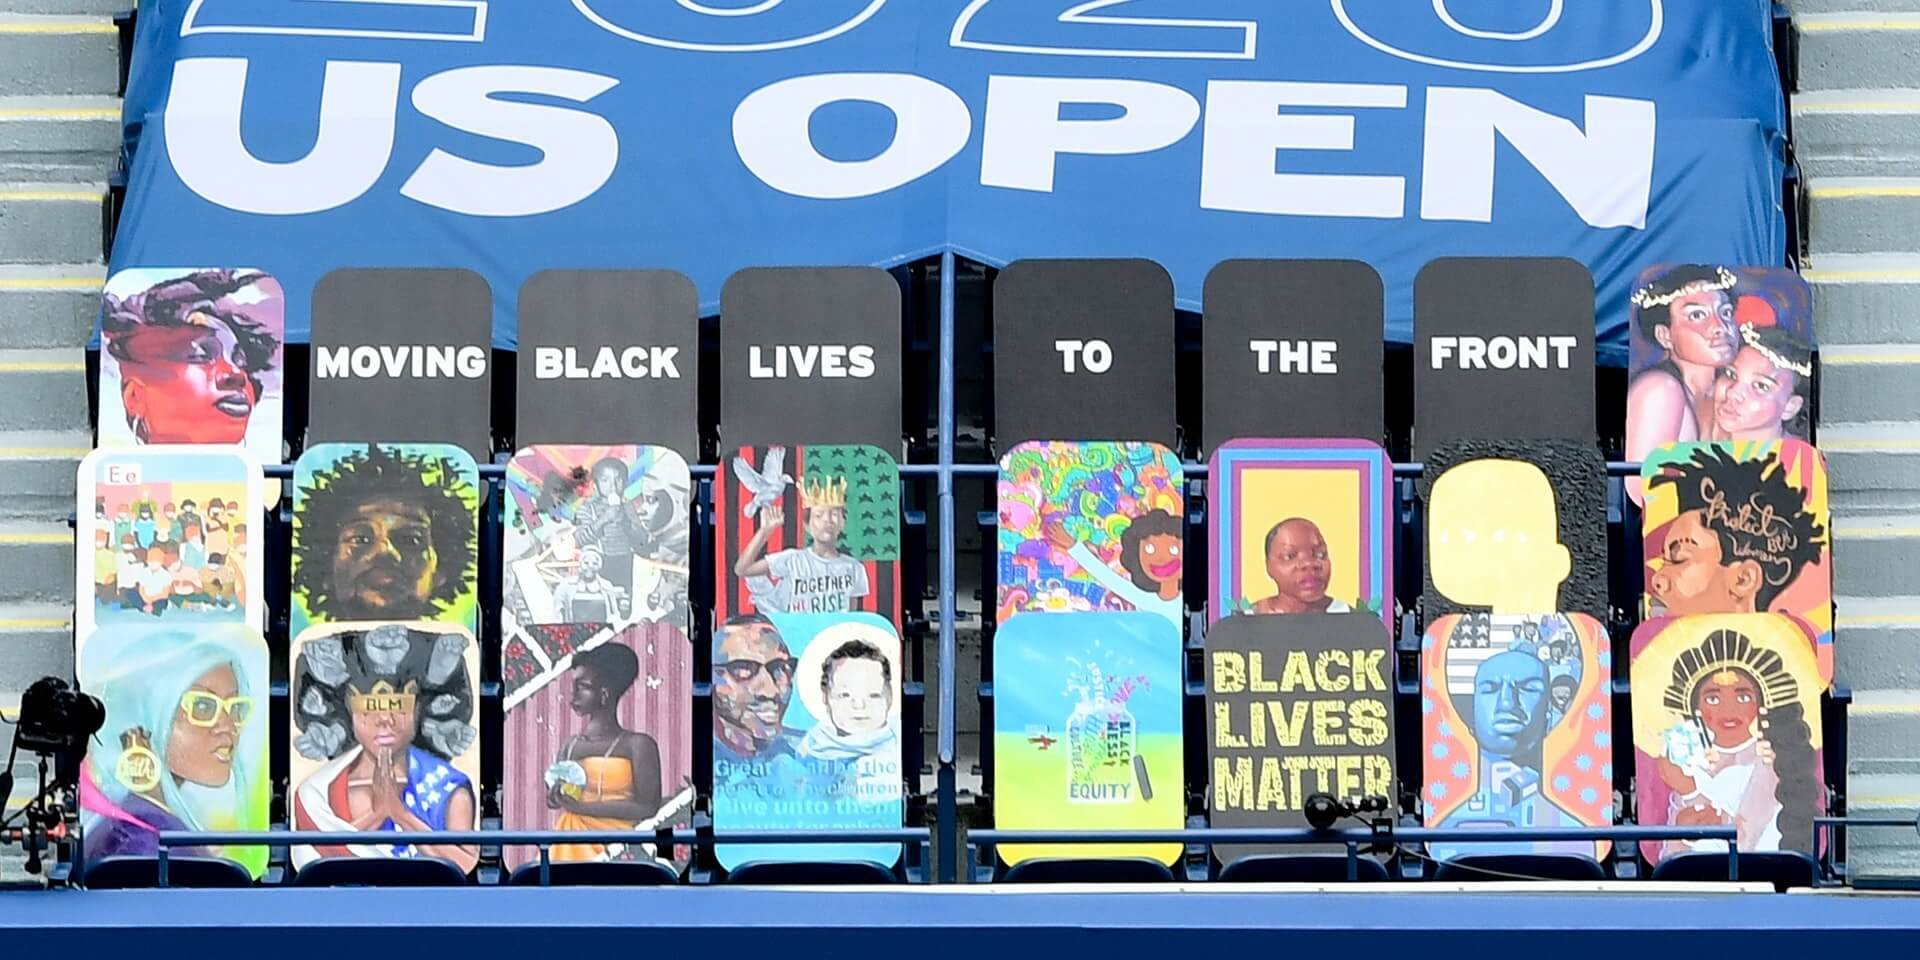 US Open: Black Lives to the Front